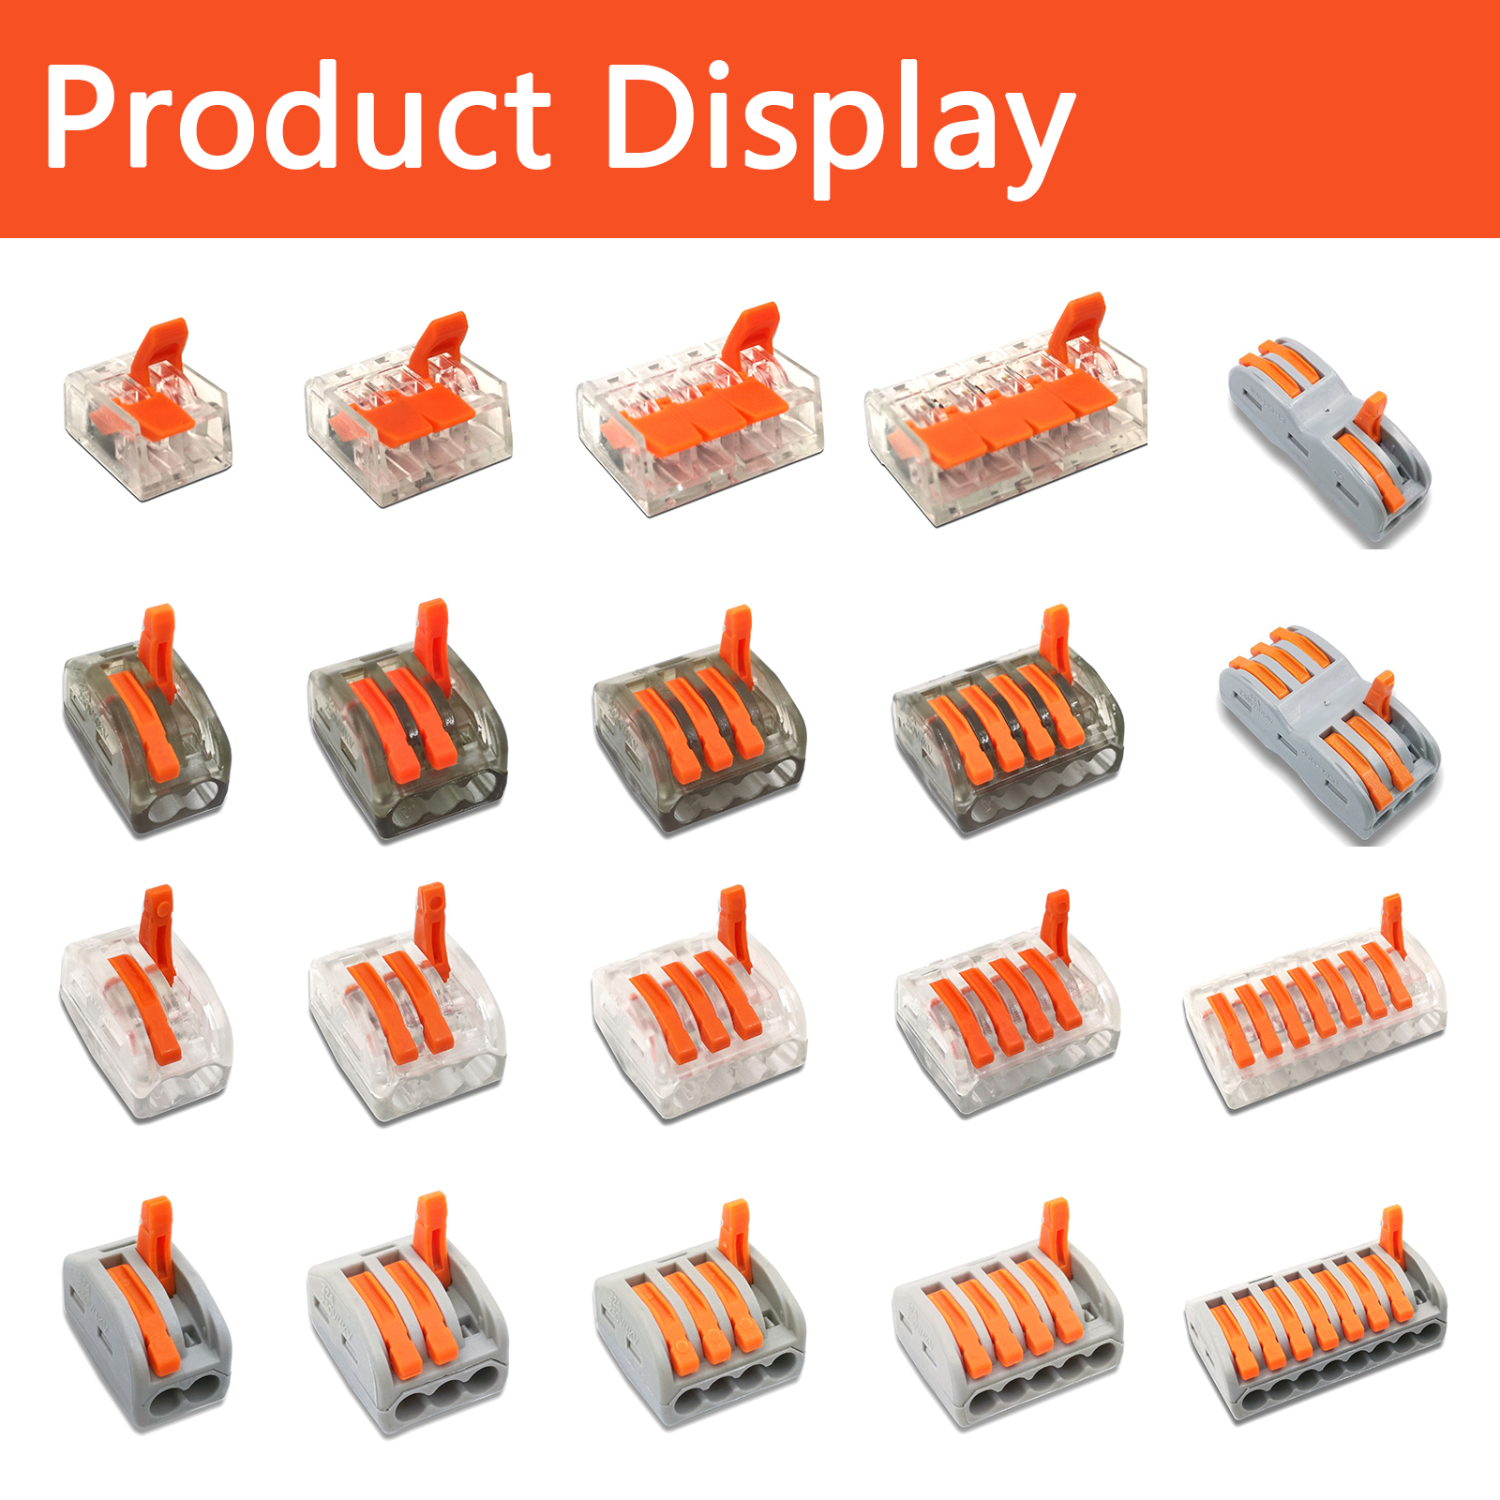 Type 10PCS Electrical Wiring Terminals Cage Spring Universal Fast Terminal Household Connectors For Connection